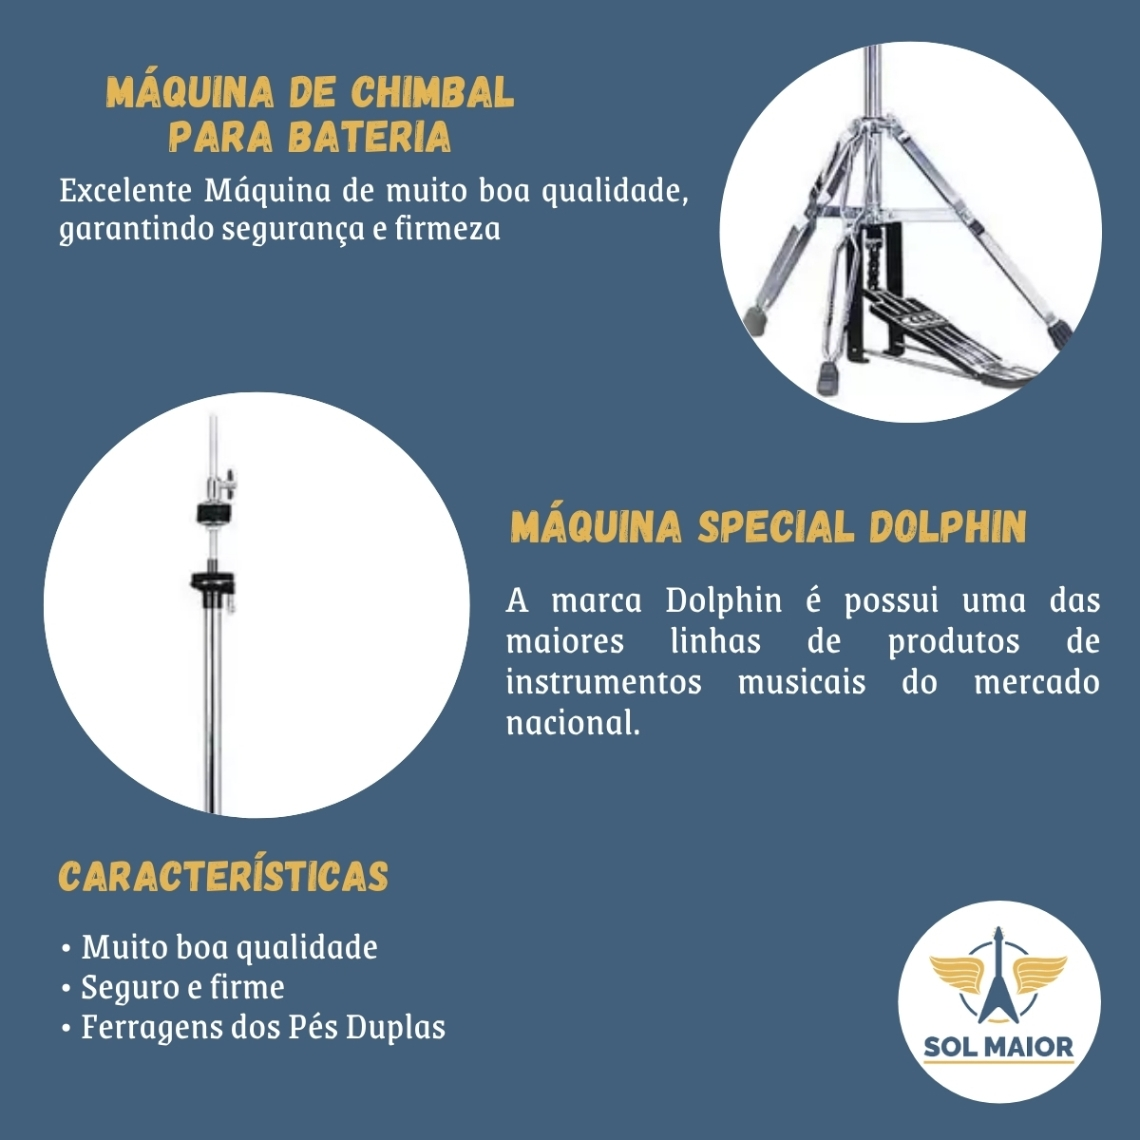 Maquina de Chimbal Special Dolphin - 7482